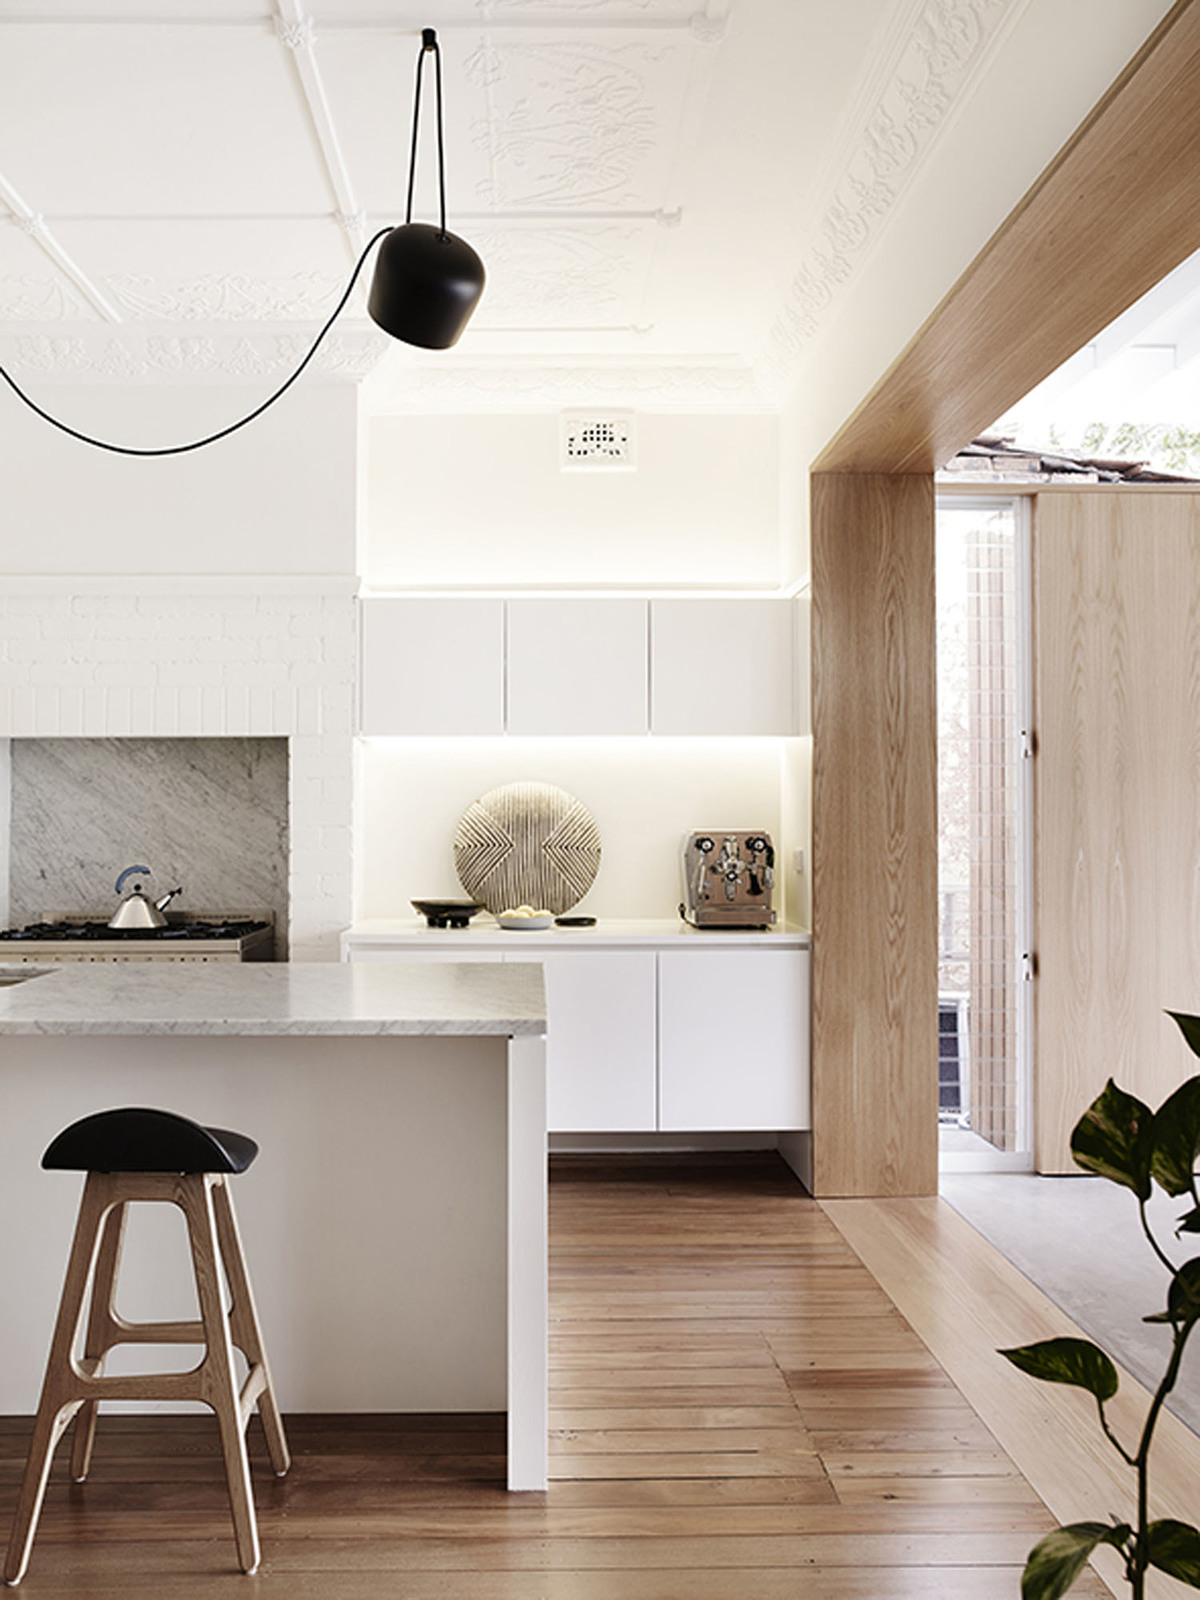 Coogee House - Australian Kitchen Design Timber Detailing - Madeleine Blanchfield Architects - Interior Archive